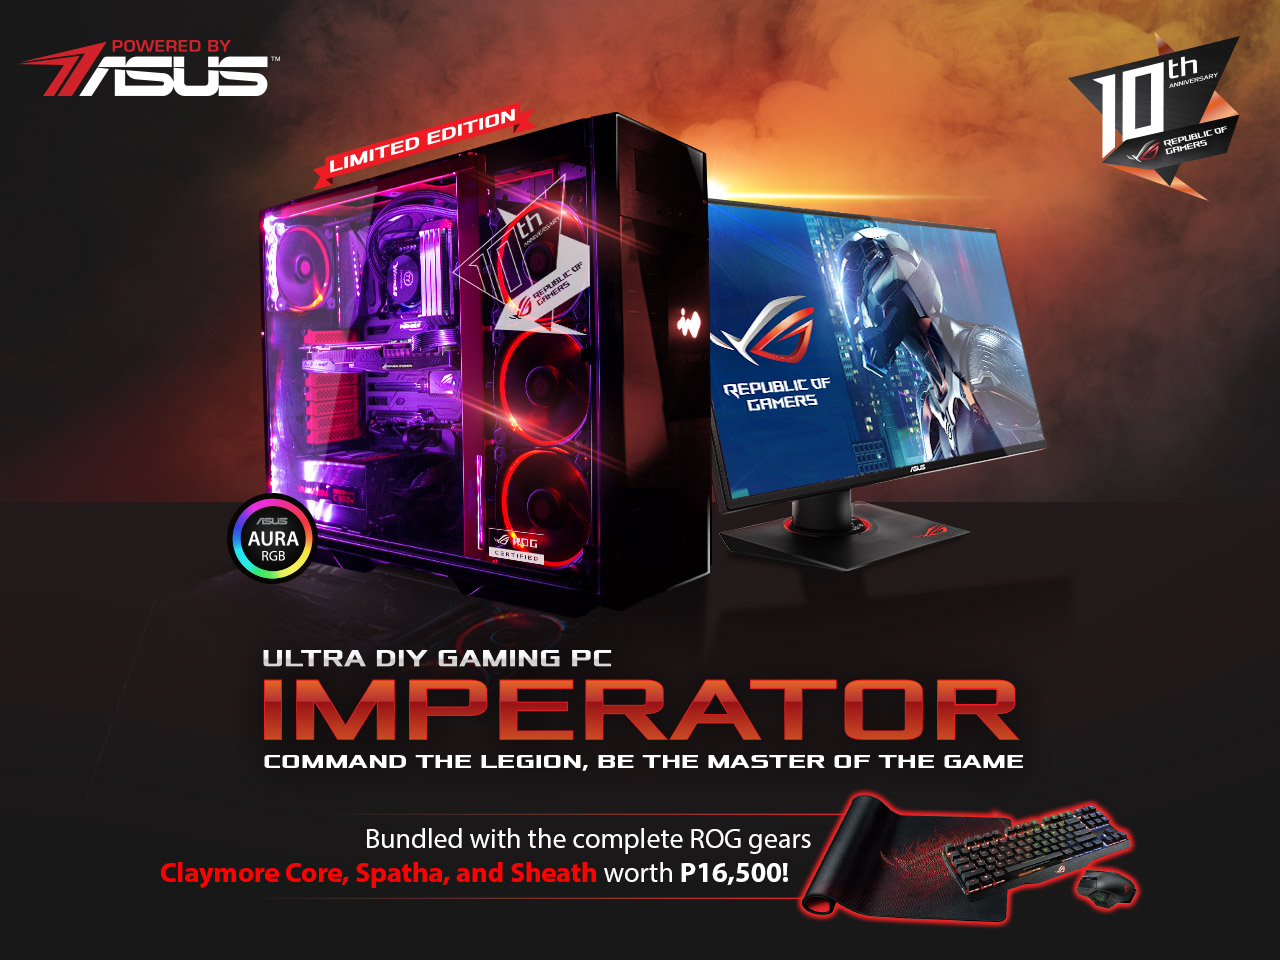 ASUS ROG Imperator Ultra Gaming DIY PC